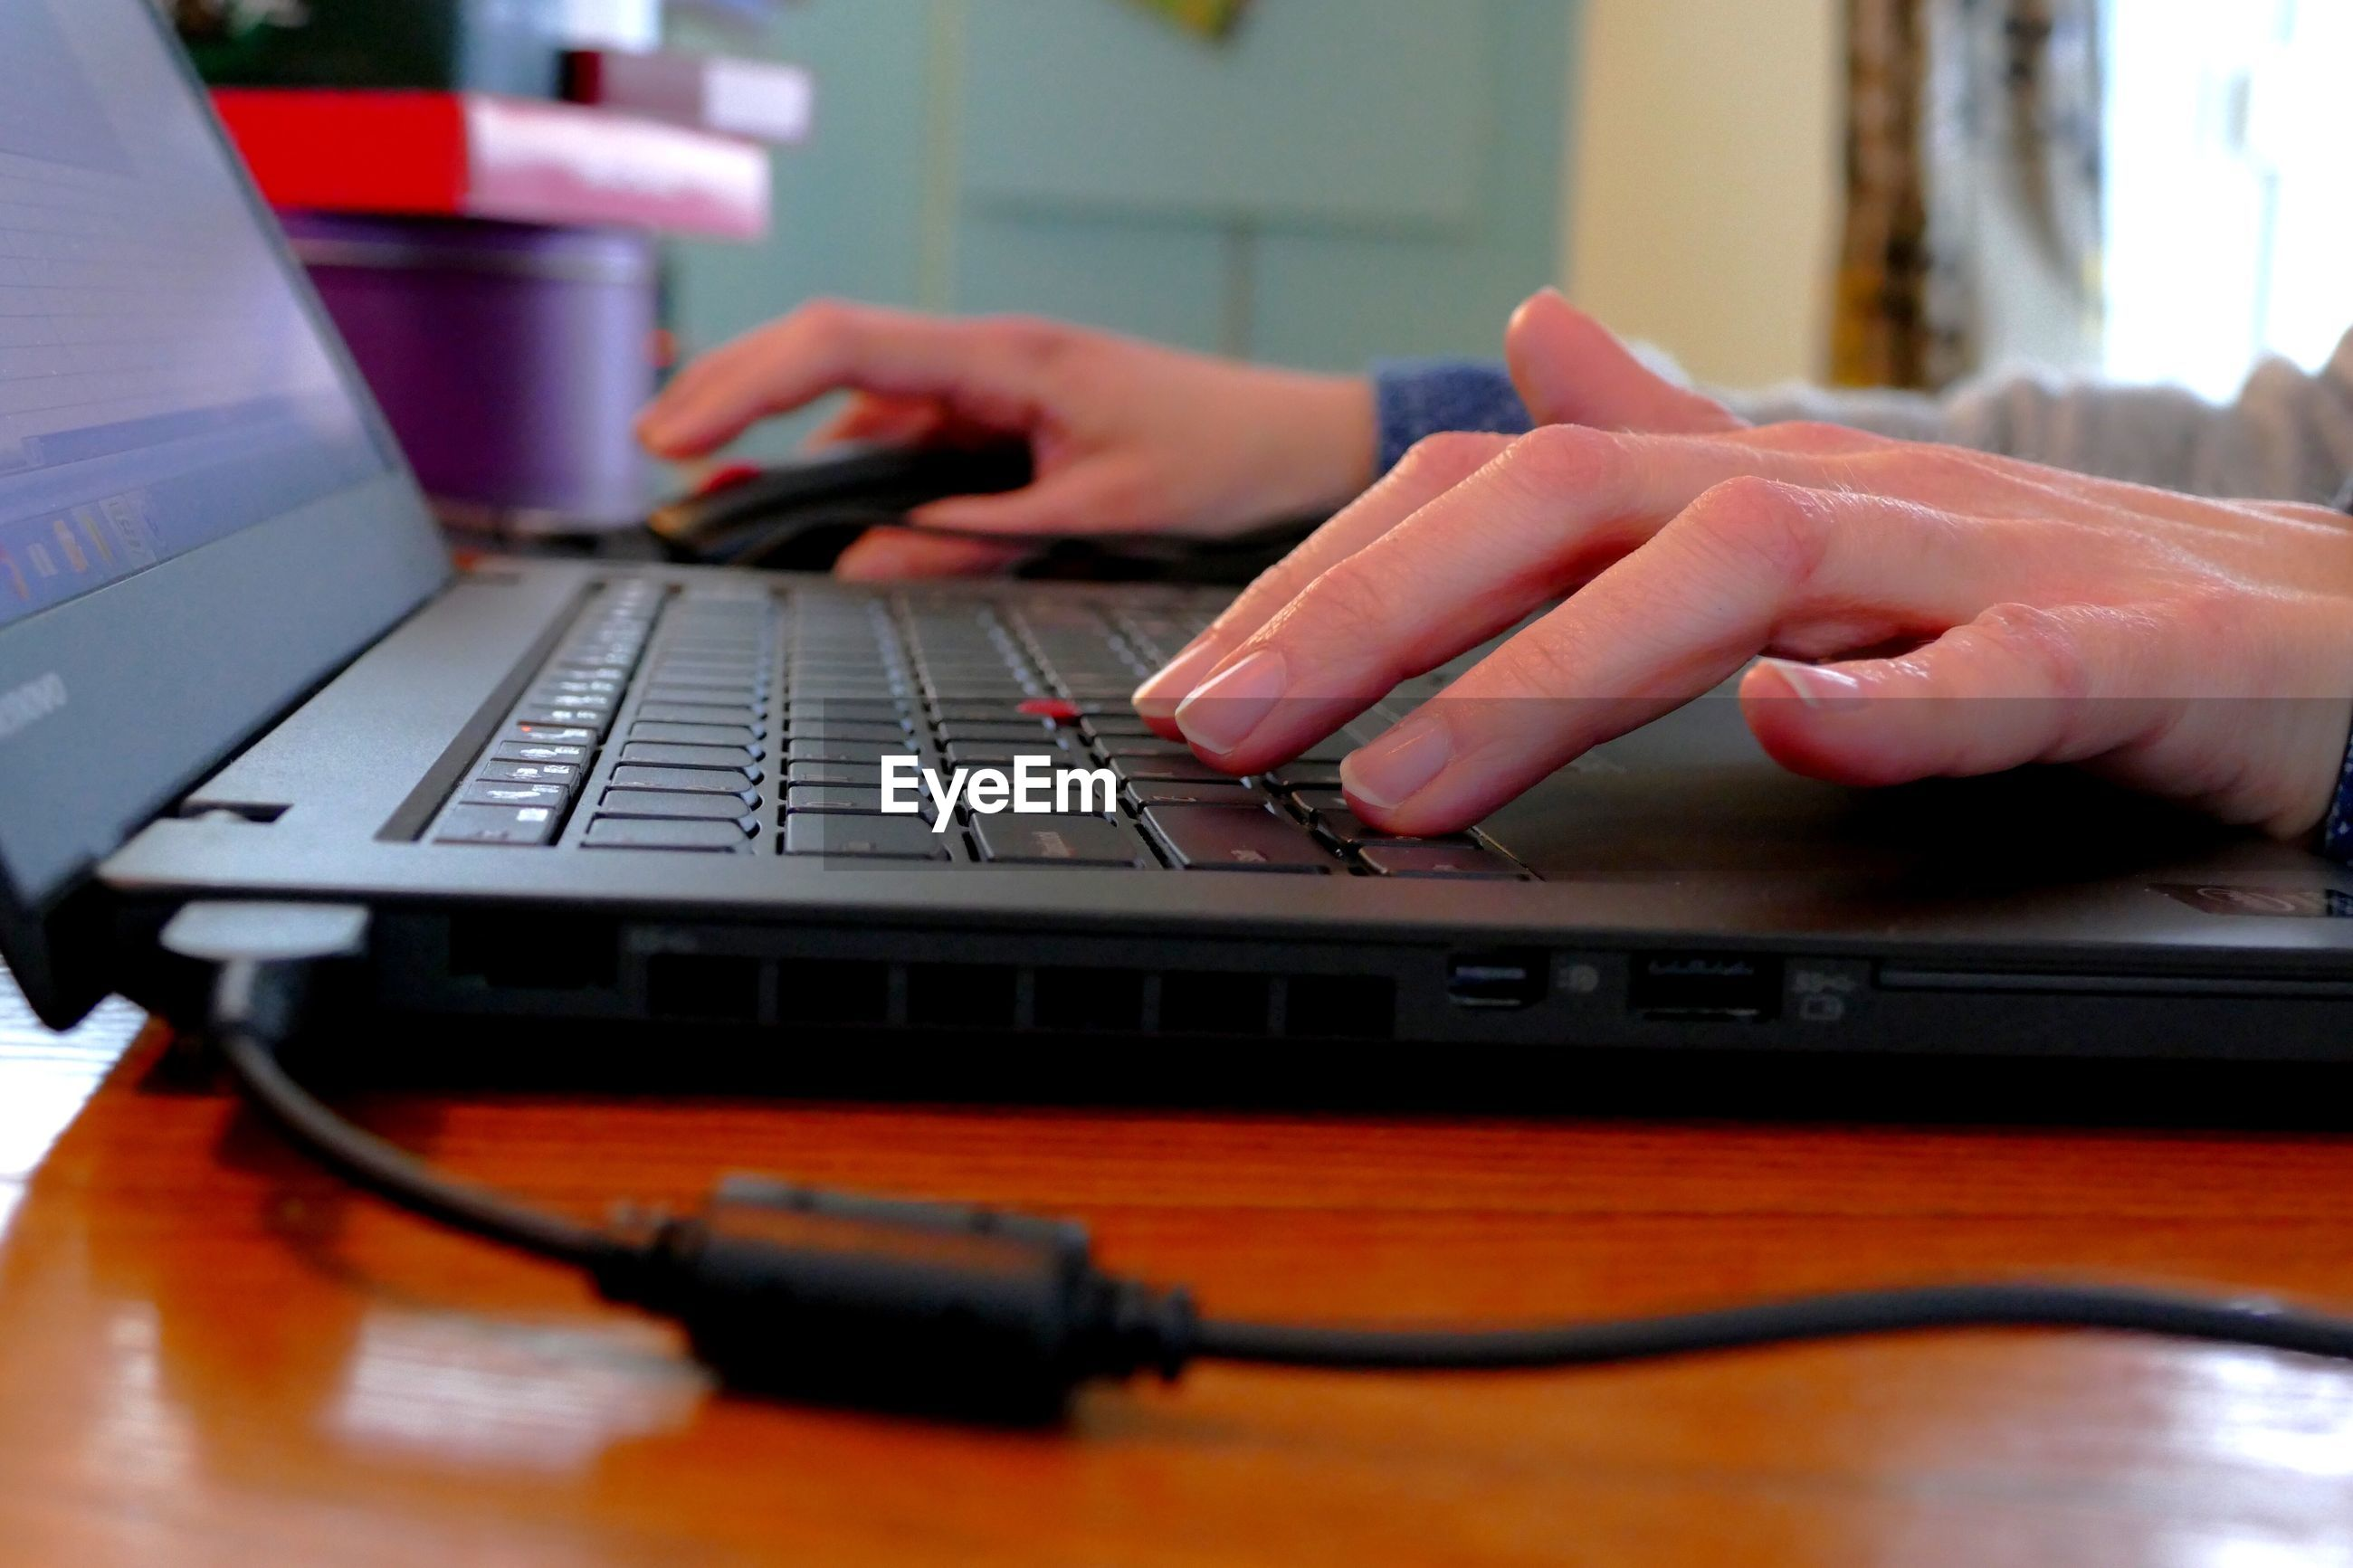 Cropped hands using laptop at table